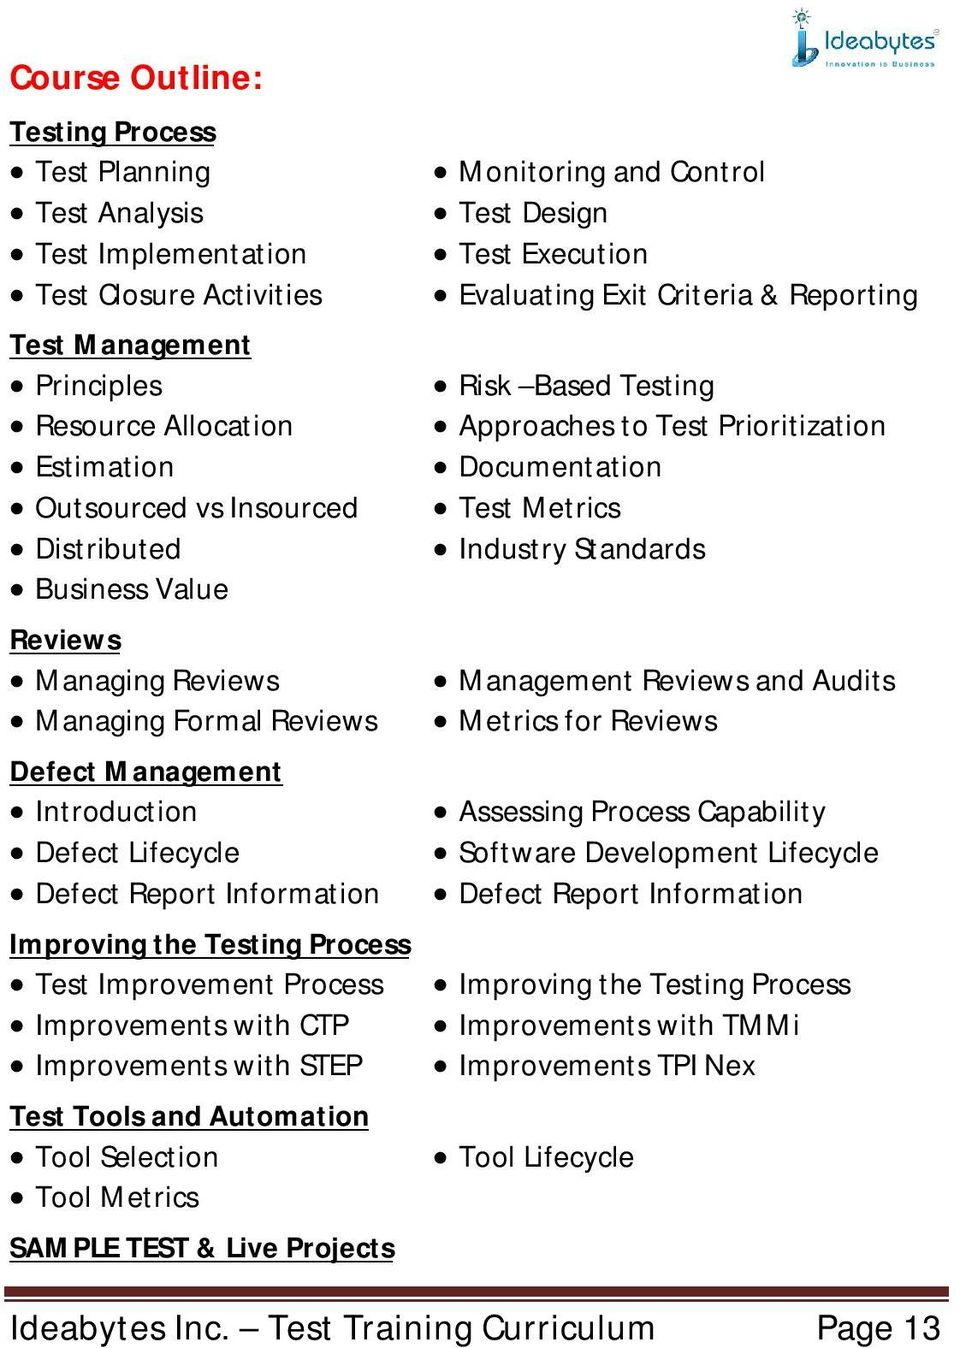 Improvements with CTP Improvements with STEP Test Tools and Automation Tool Selection Tool Metrics SAMPLE TEST & Live Projects Monitoring and Control Test Design Test Execution Evaluating Exit